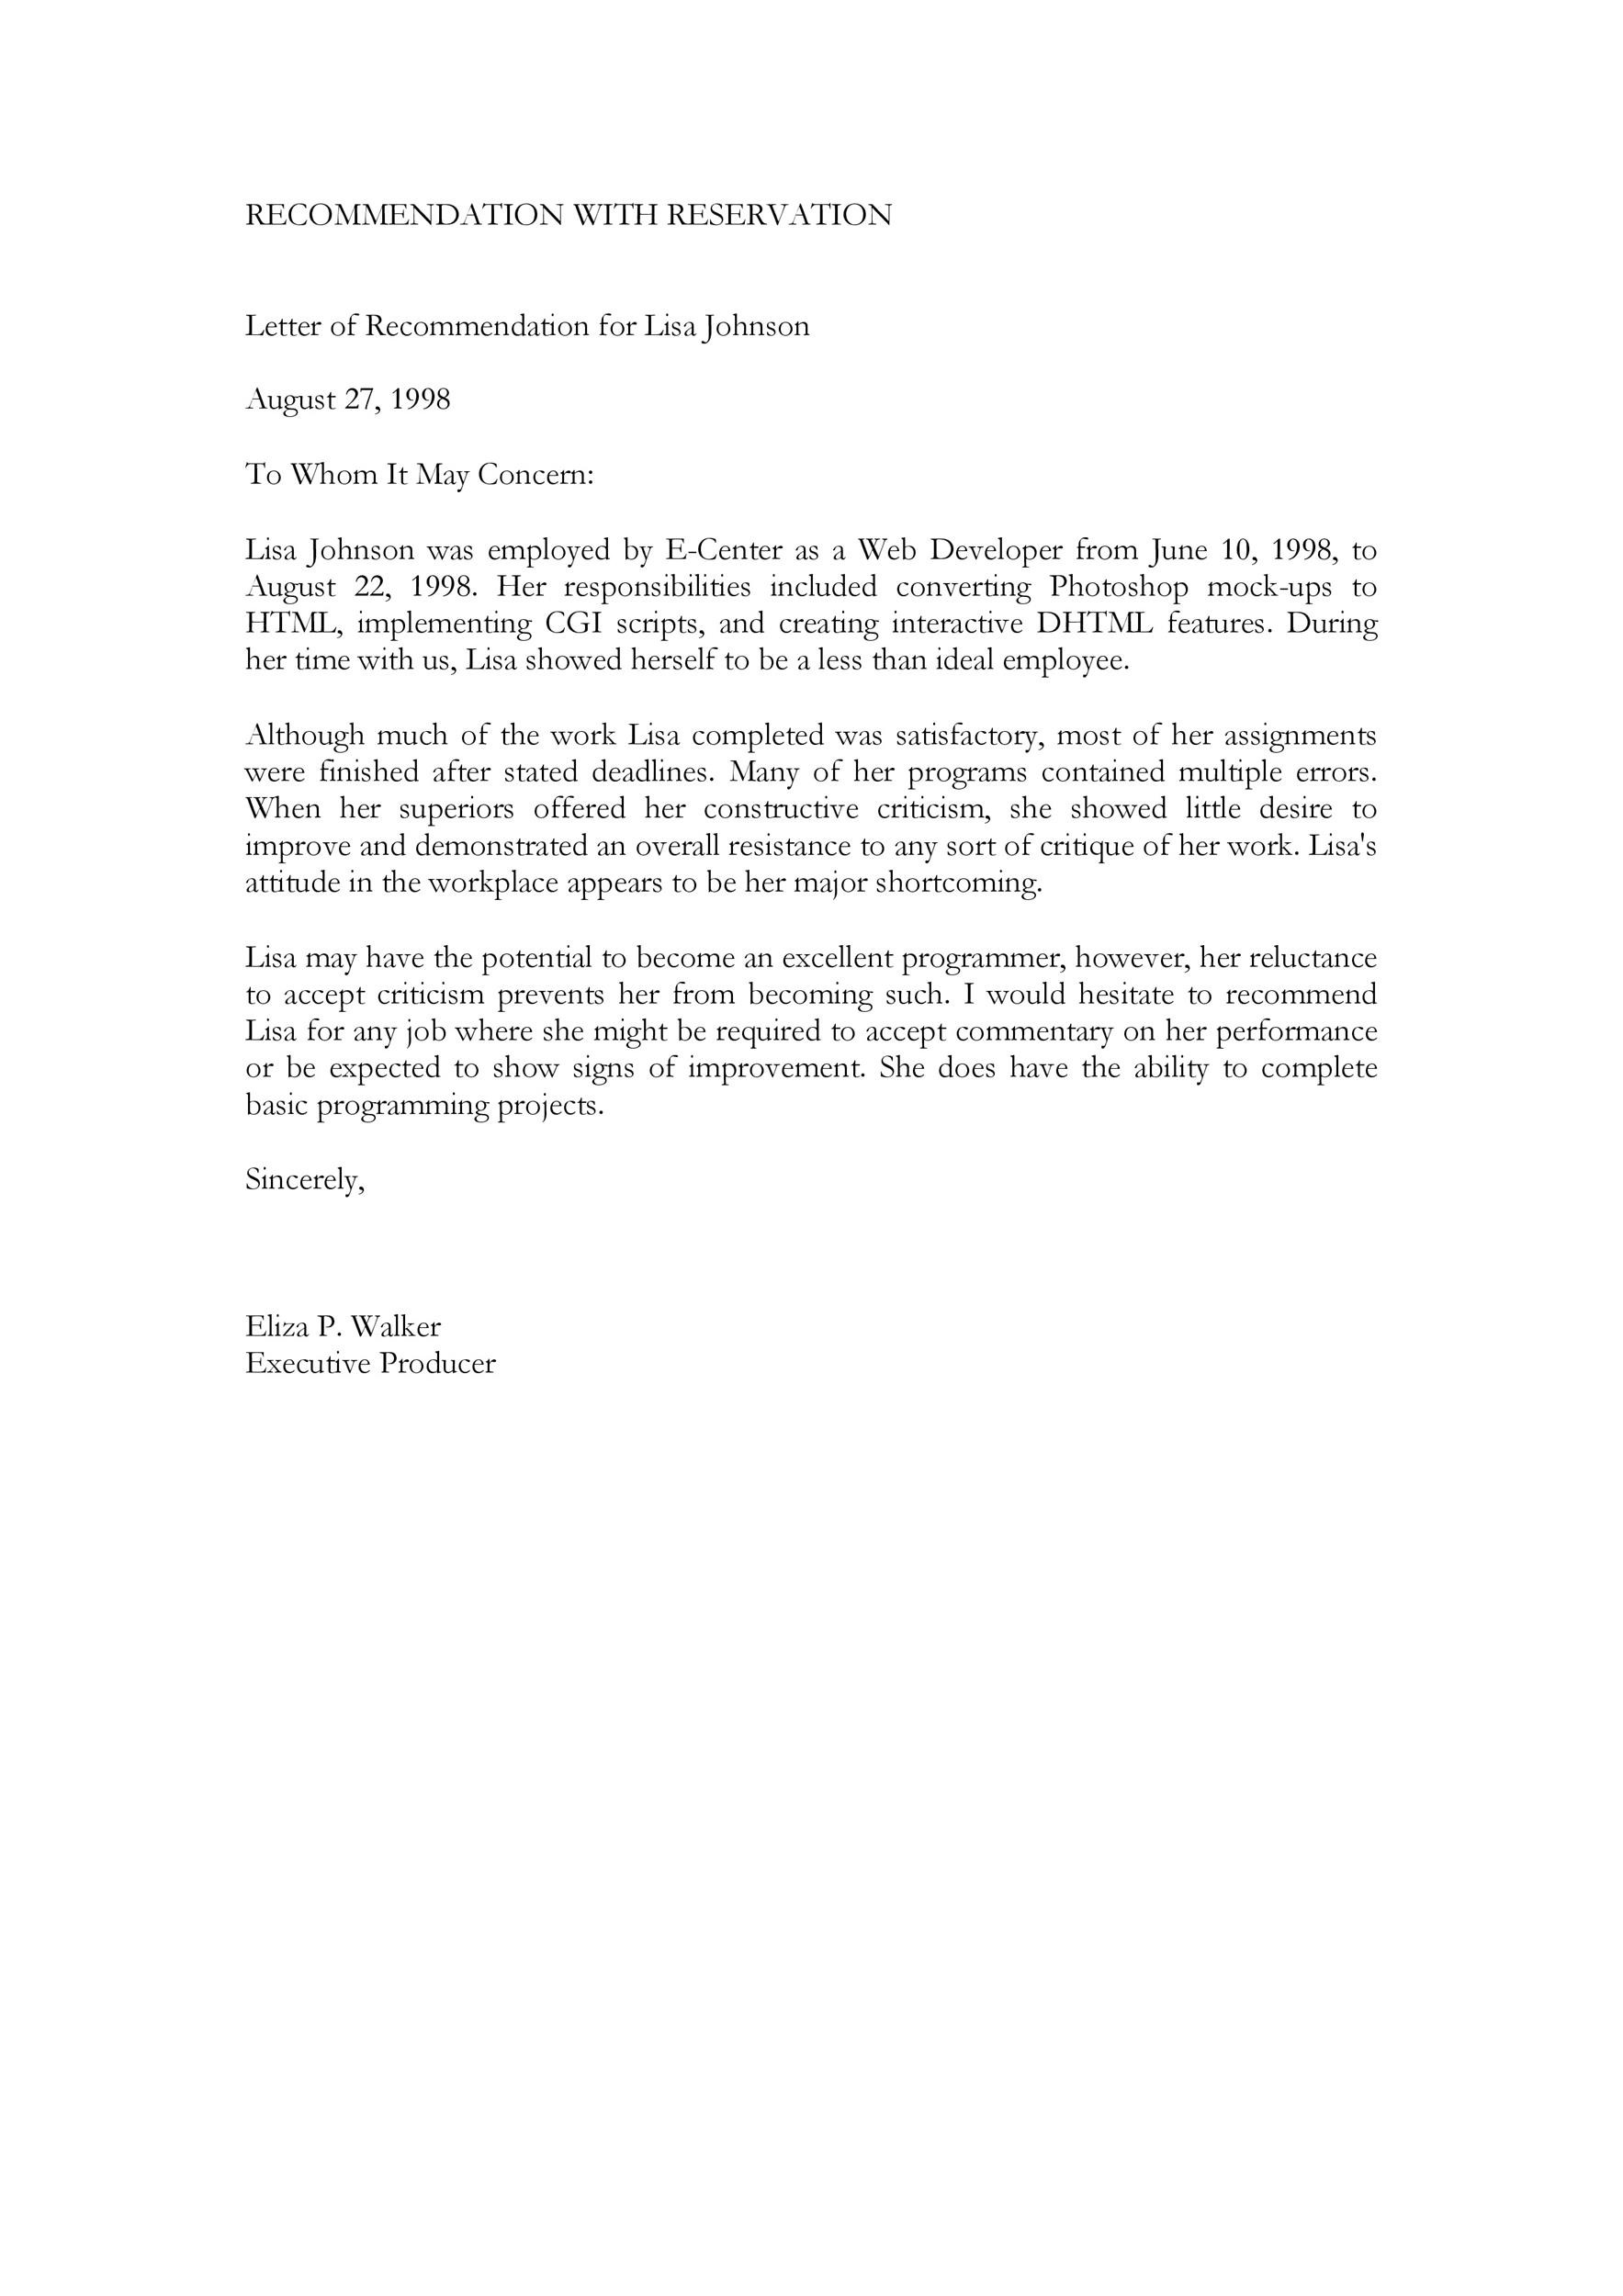 Employee Recommendation Letter From Manager from templatelab.com